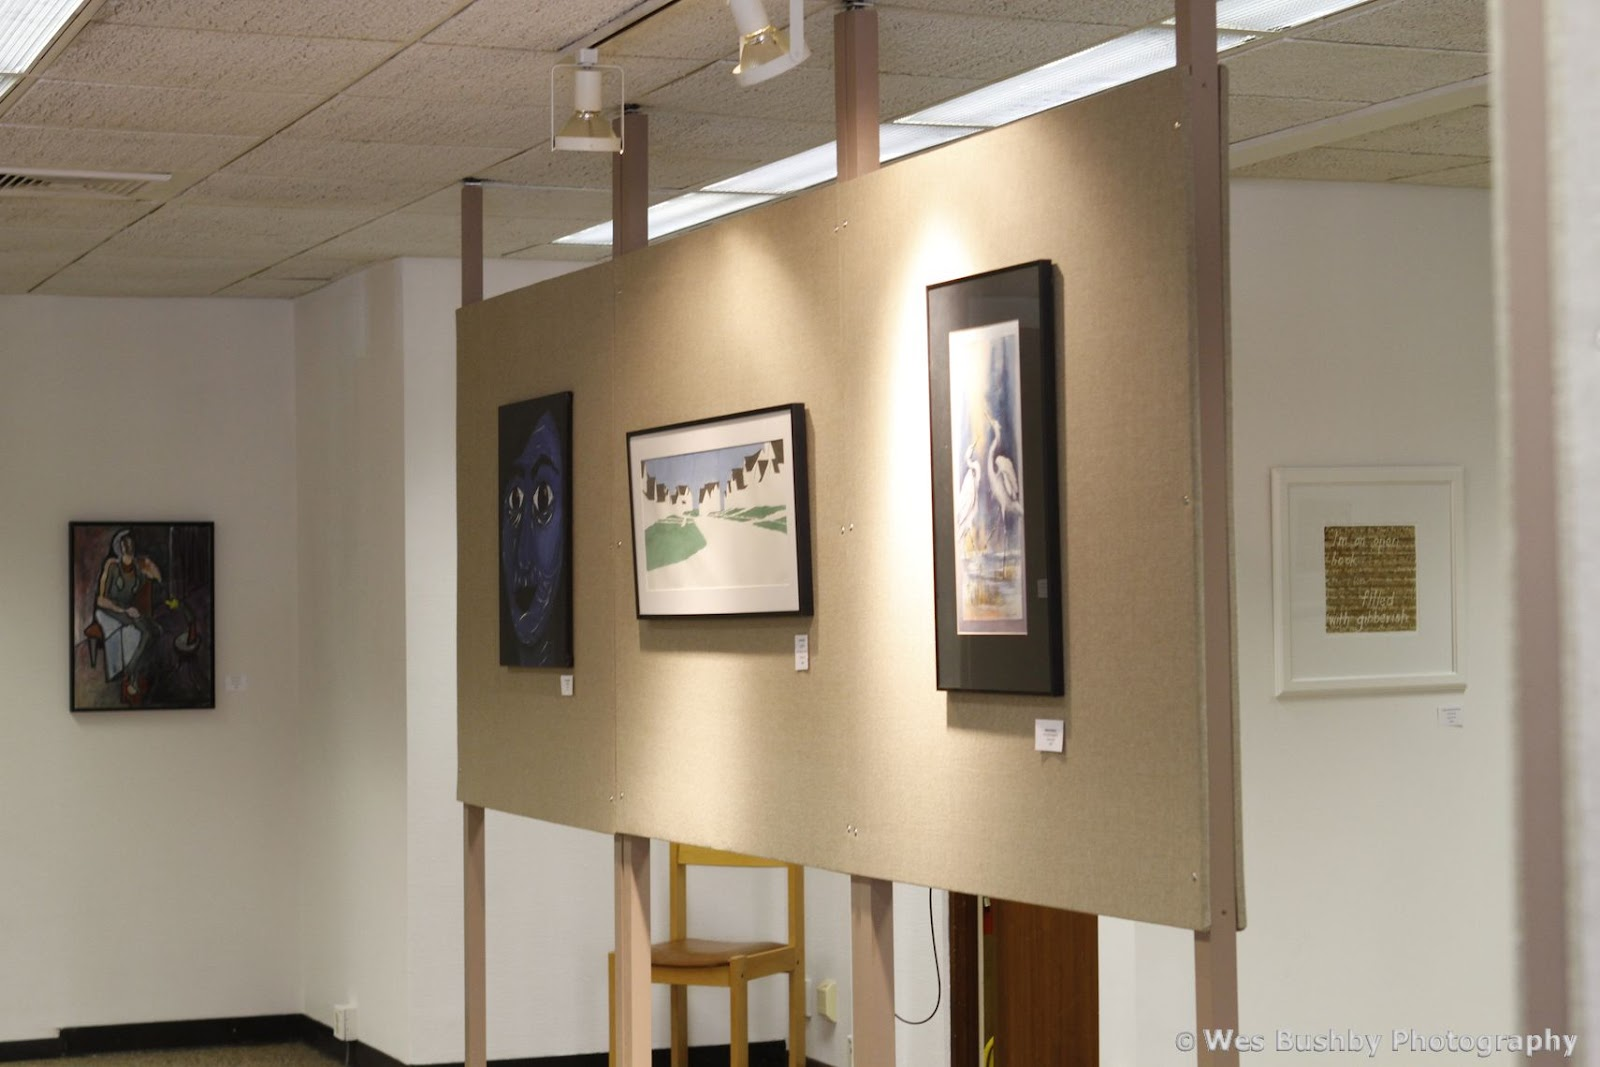 On special occasions, I have been told, the bank will have longer hours to accommodate the art center. Here are some photos that I took inside .